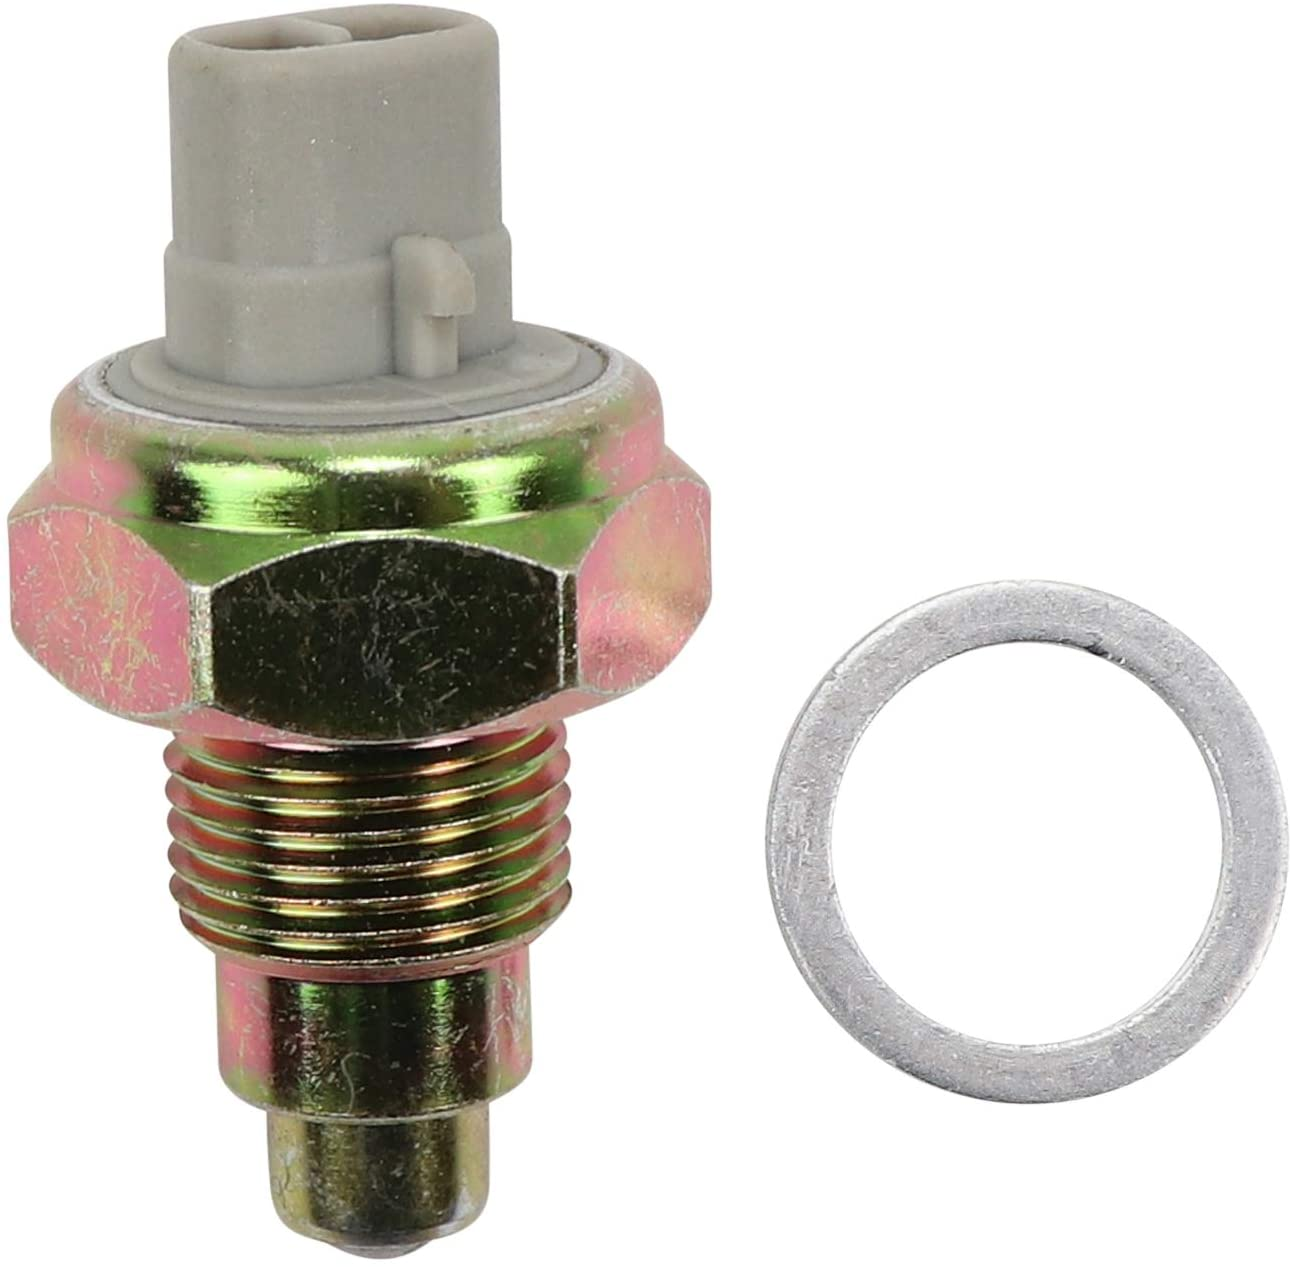 Fuel Parts Reverse Light Switch Safety Back Up Genuine OE Quality Replacement